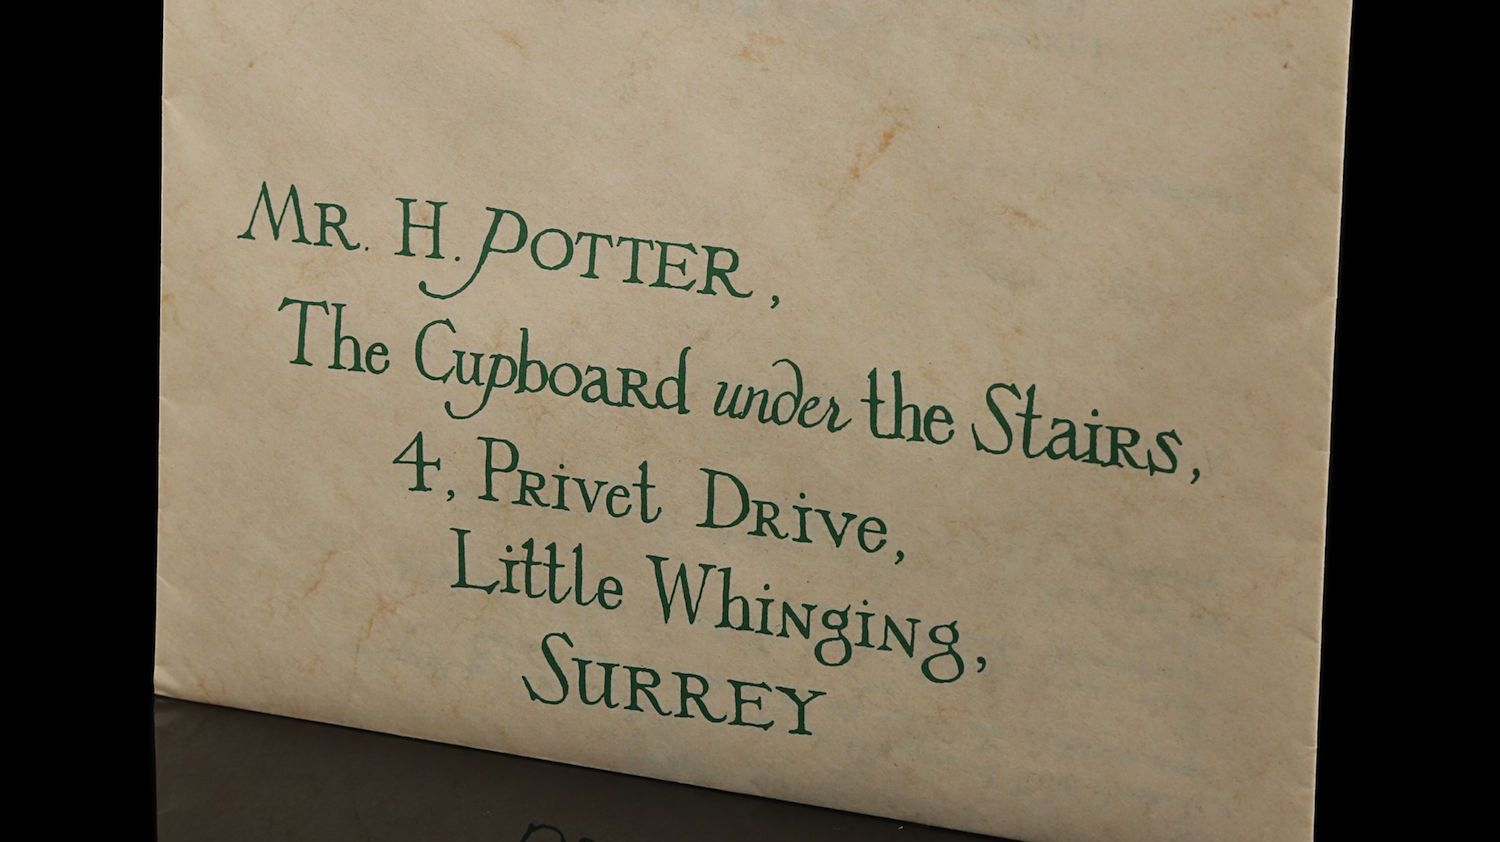 Harry Potter S Hogwarts Acceptance Letter Is Hitting The Auction Block Mental Floss